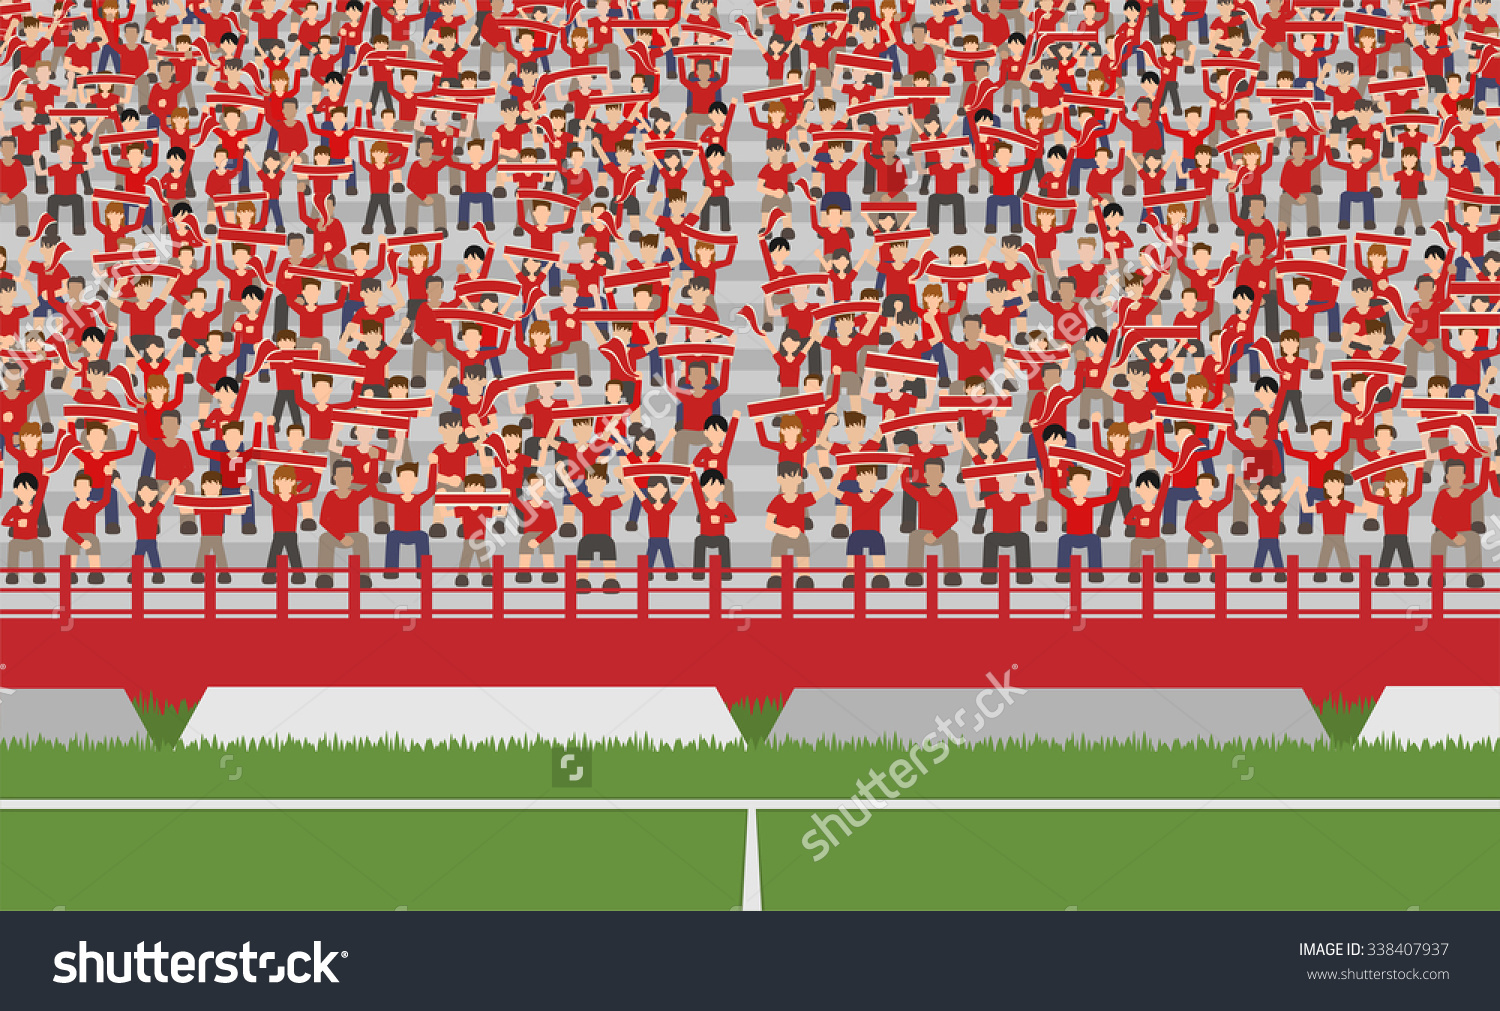 Soccer Field Crowd Red Team Cheering Stock Vector 338407937.